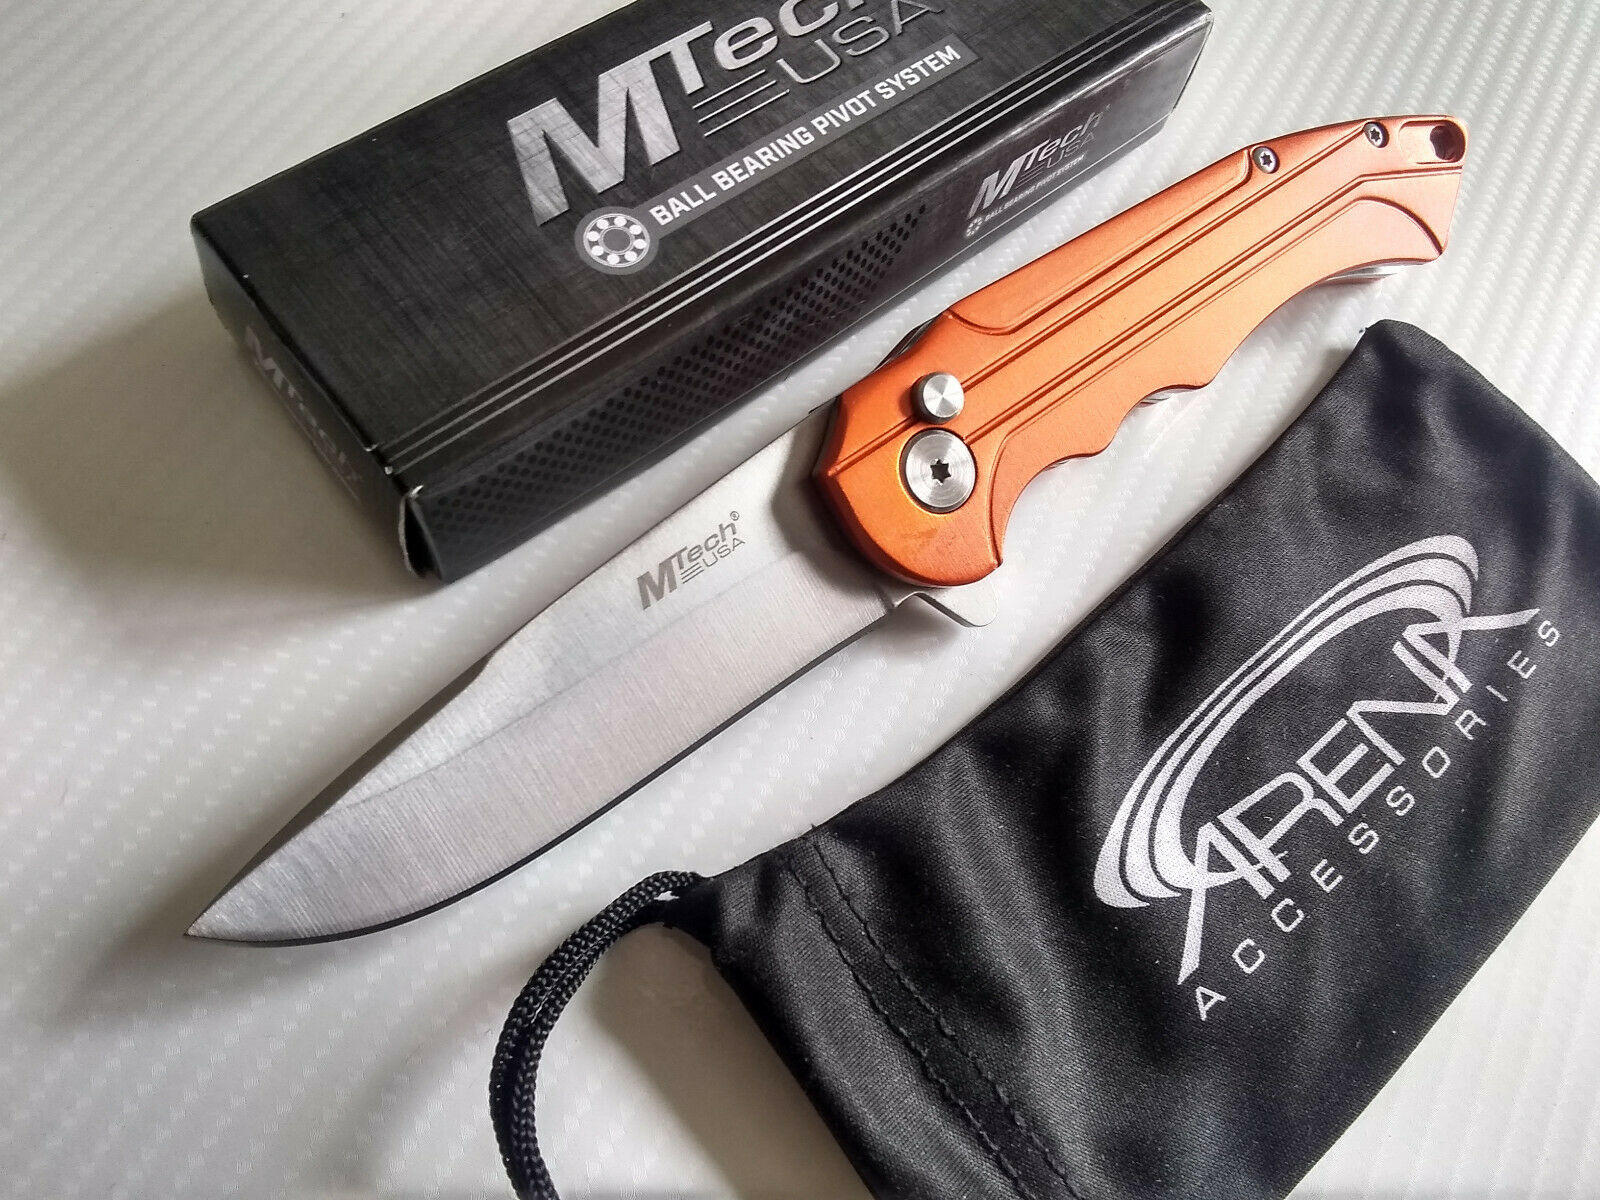 MTech Orange Manual Button Lock Ball Bearing Pocket Knife Anodized Aluminum Handle EDC